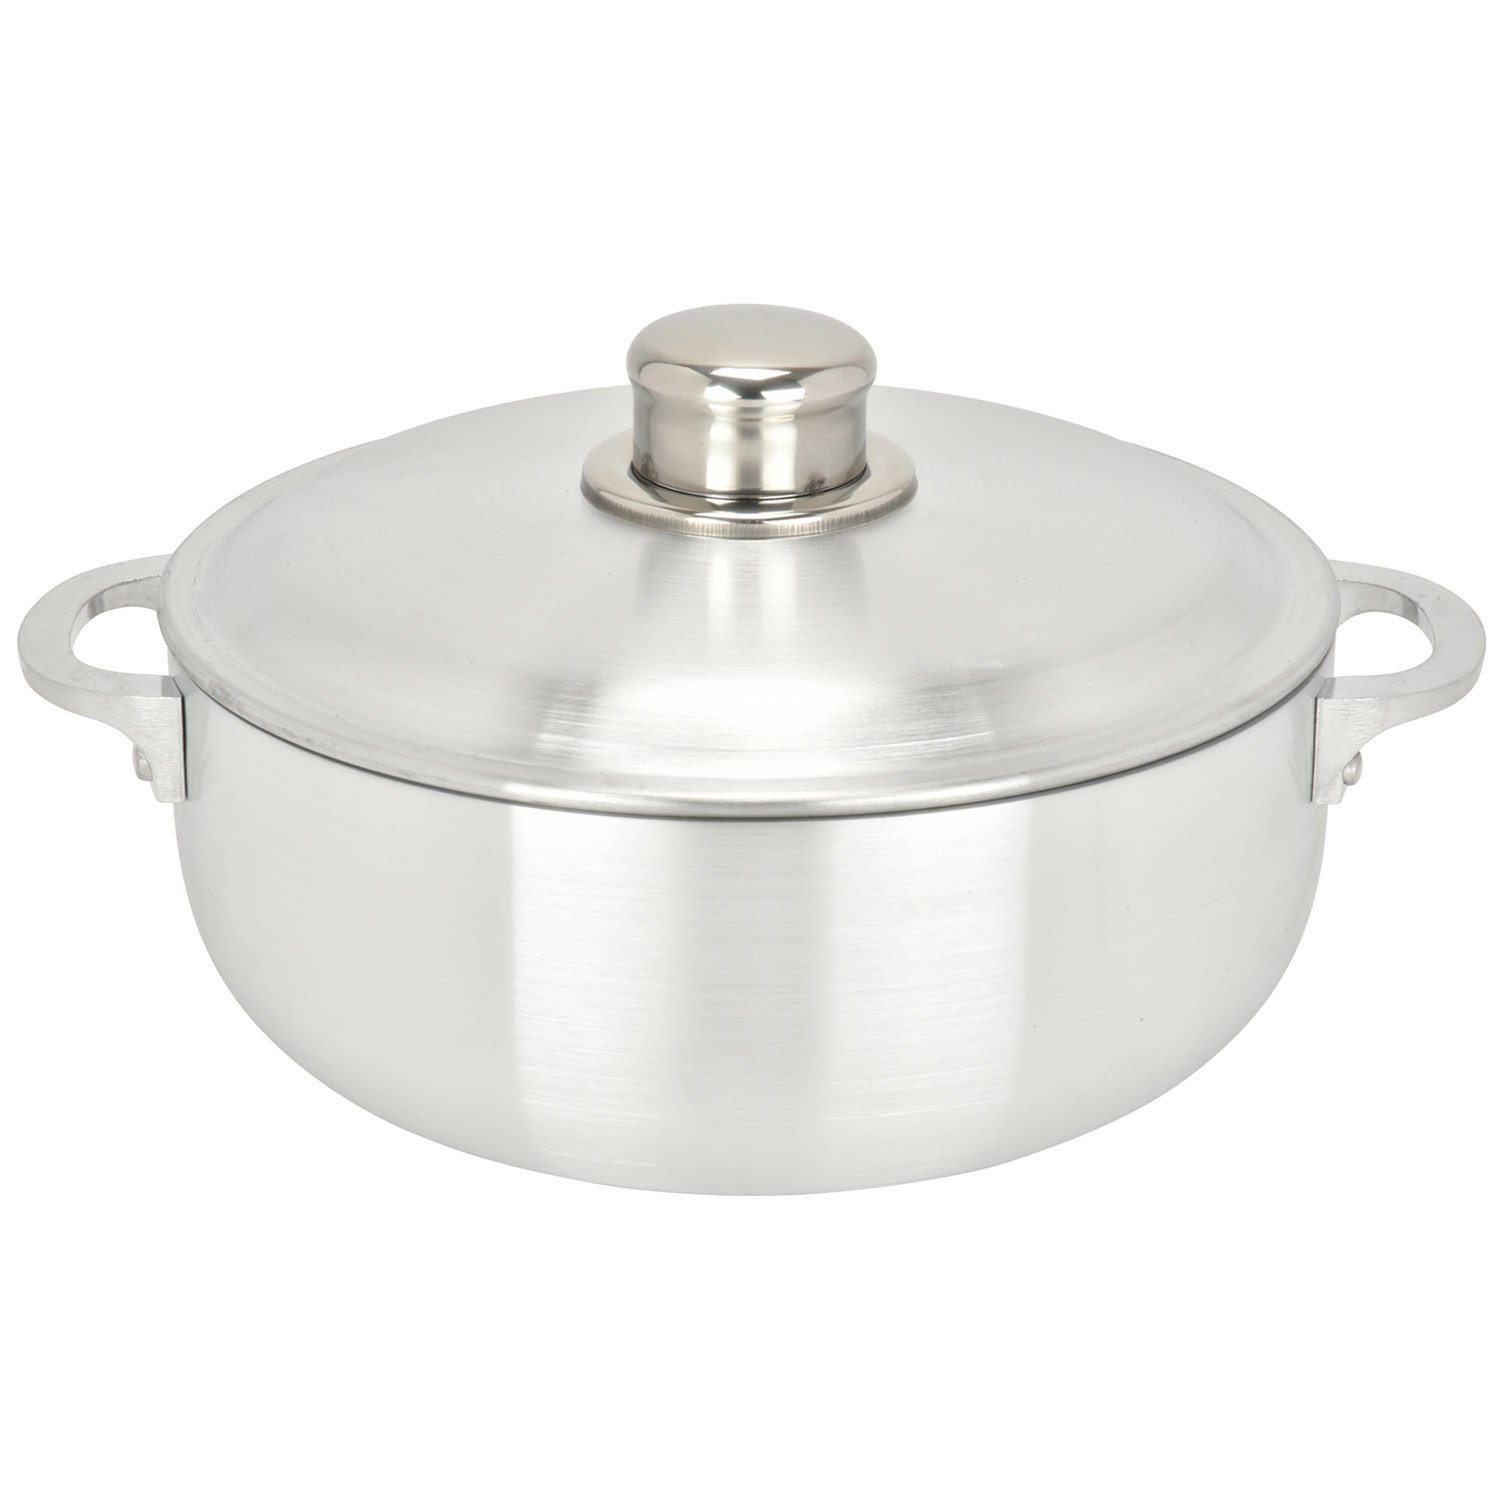 ALUMINUM CALDERO STOCK POT by Chef Pro, Aluminum, Superior Cooking Performance for Even Heat Distribution, Perfect For Serving Large and Small Groups, Riveted Handles, Commercial Grade (1.9 Quart)